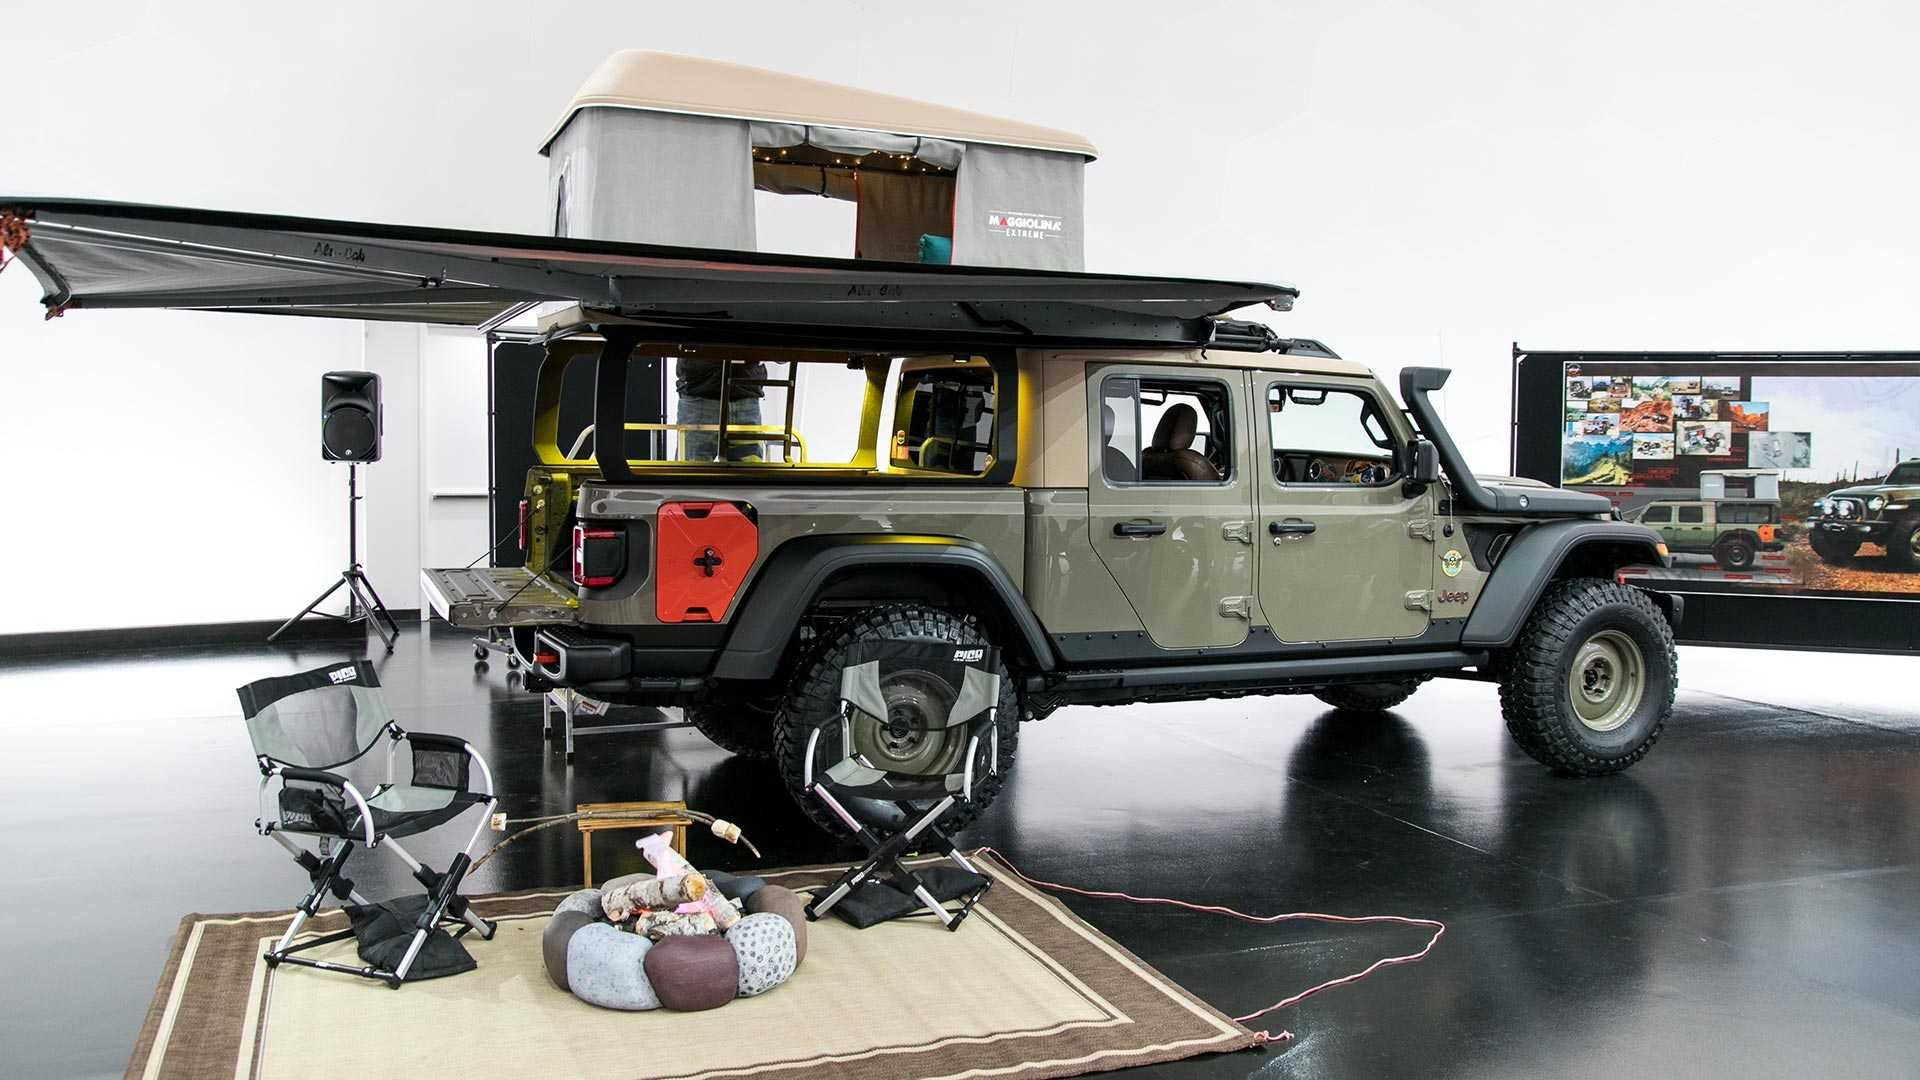 Jeep Gladiator Wayout Is A Camping Pickup Truck With A ...